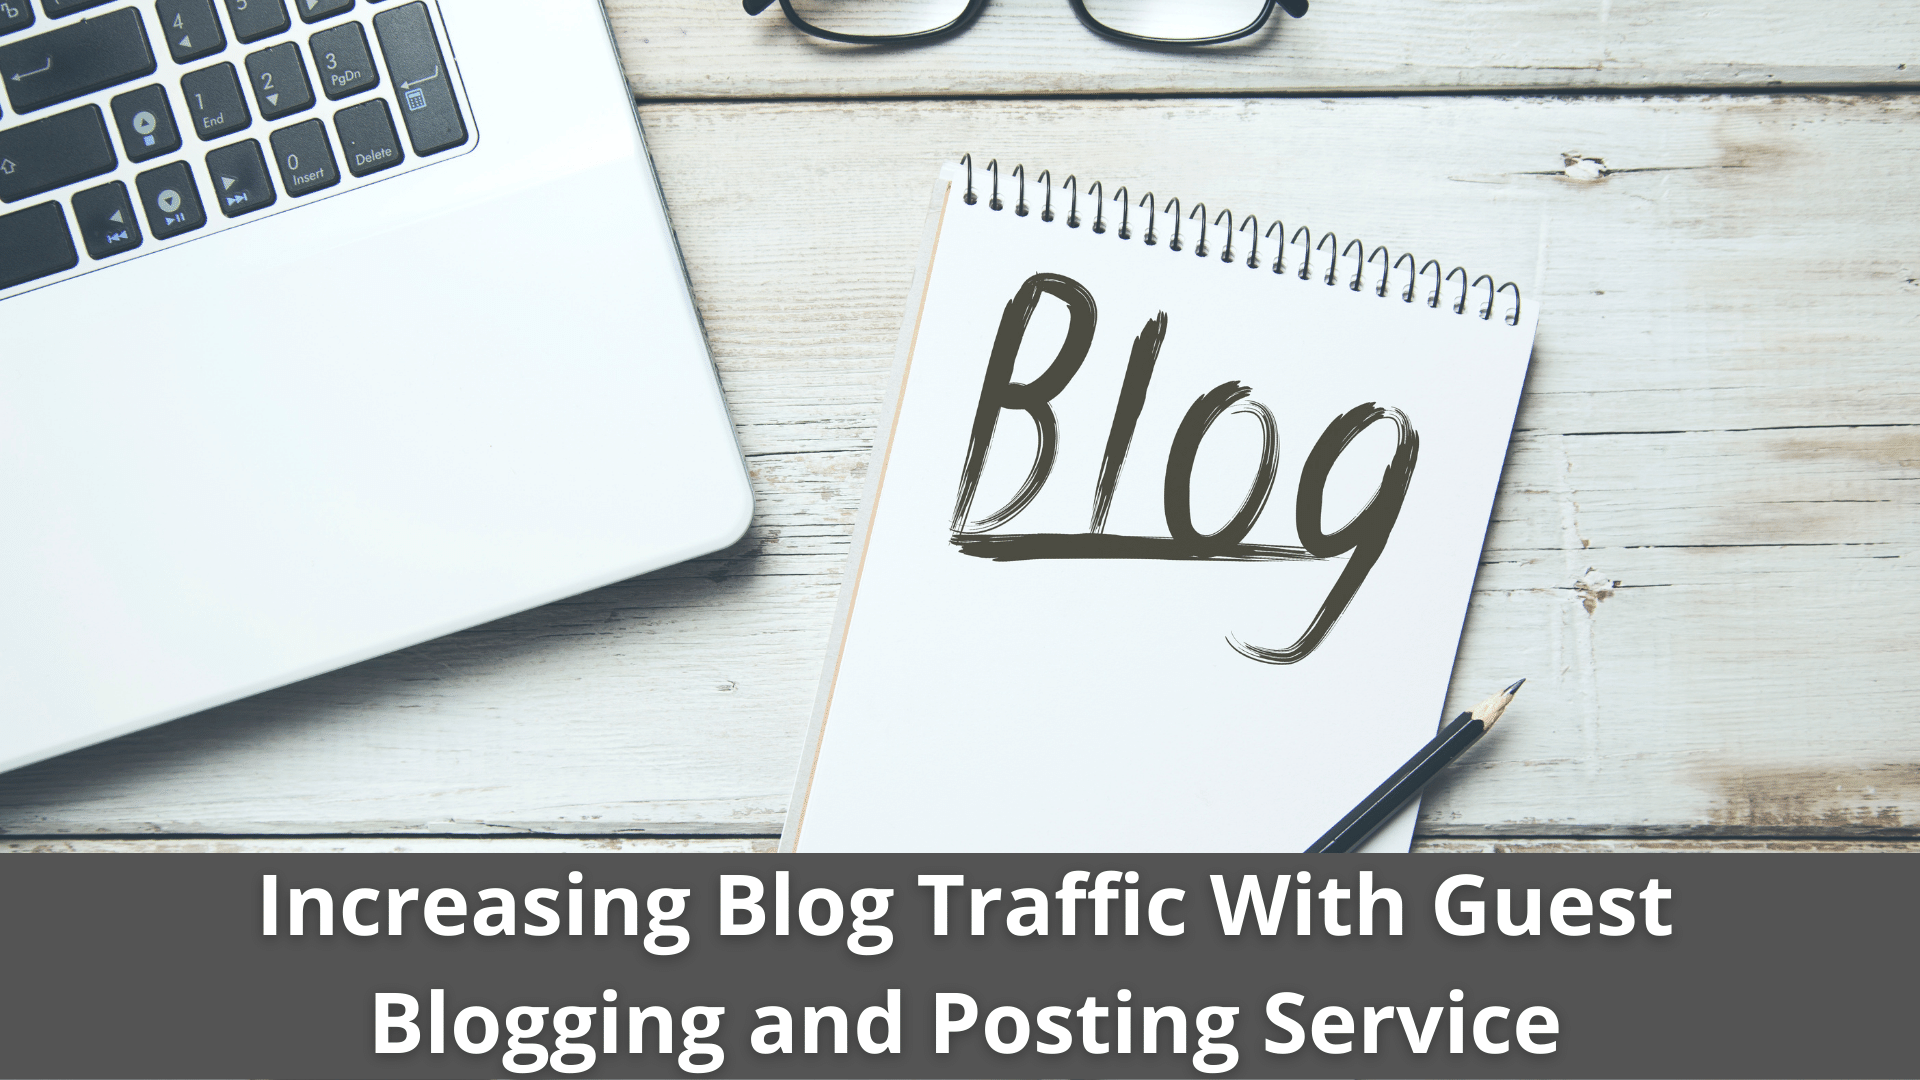 Benefits of Increasing Blog Traffic With Guest Blogging and Posting Service 41